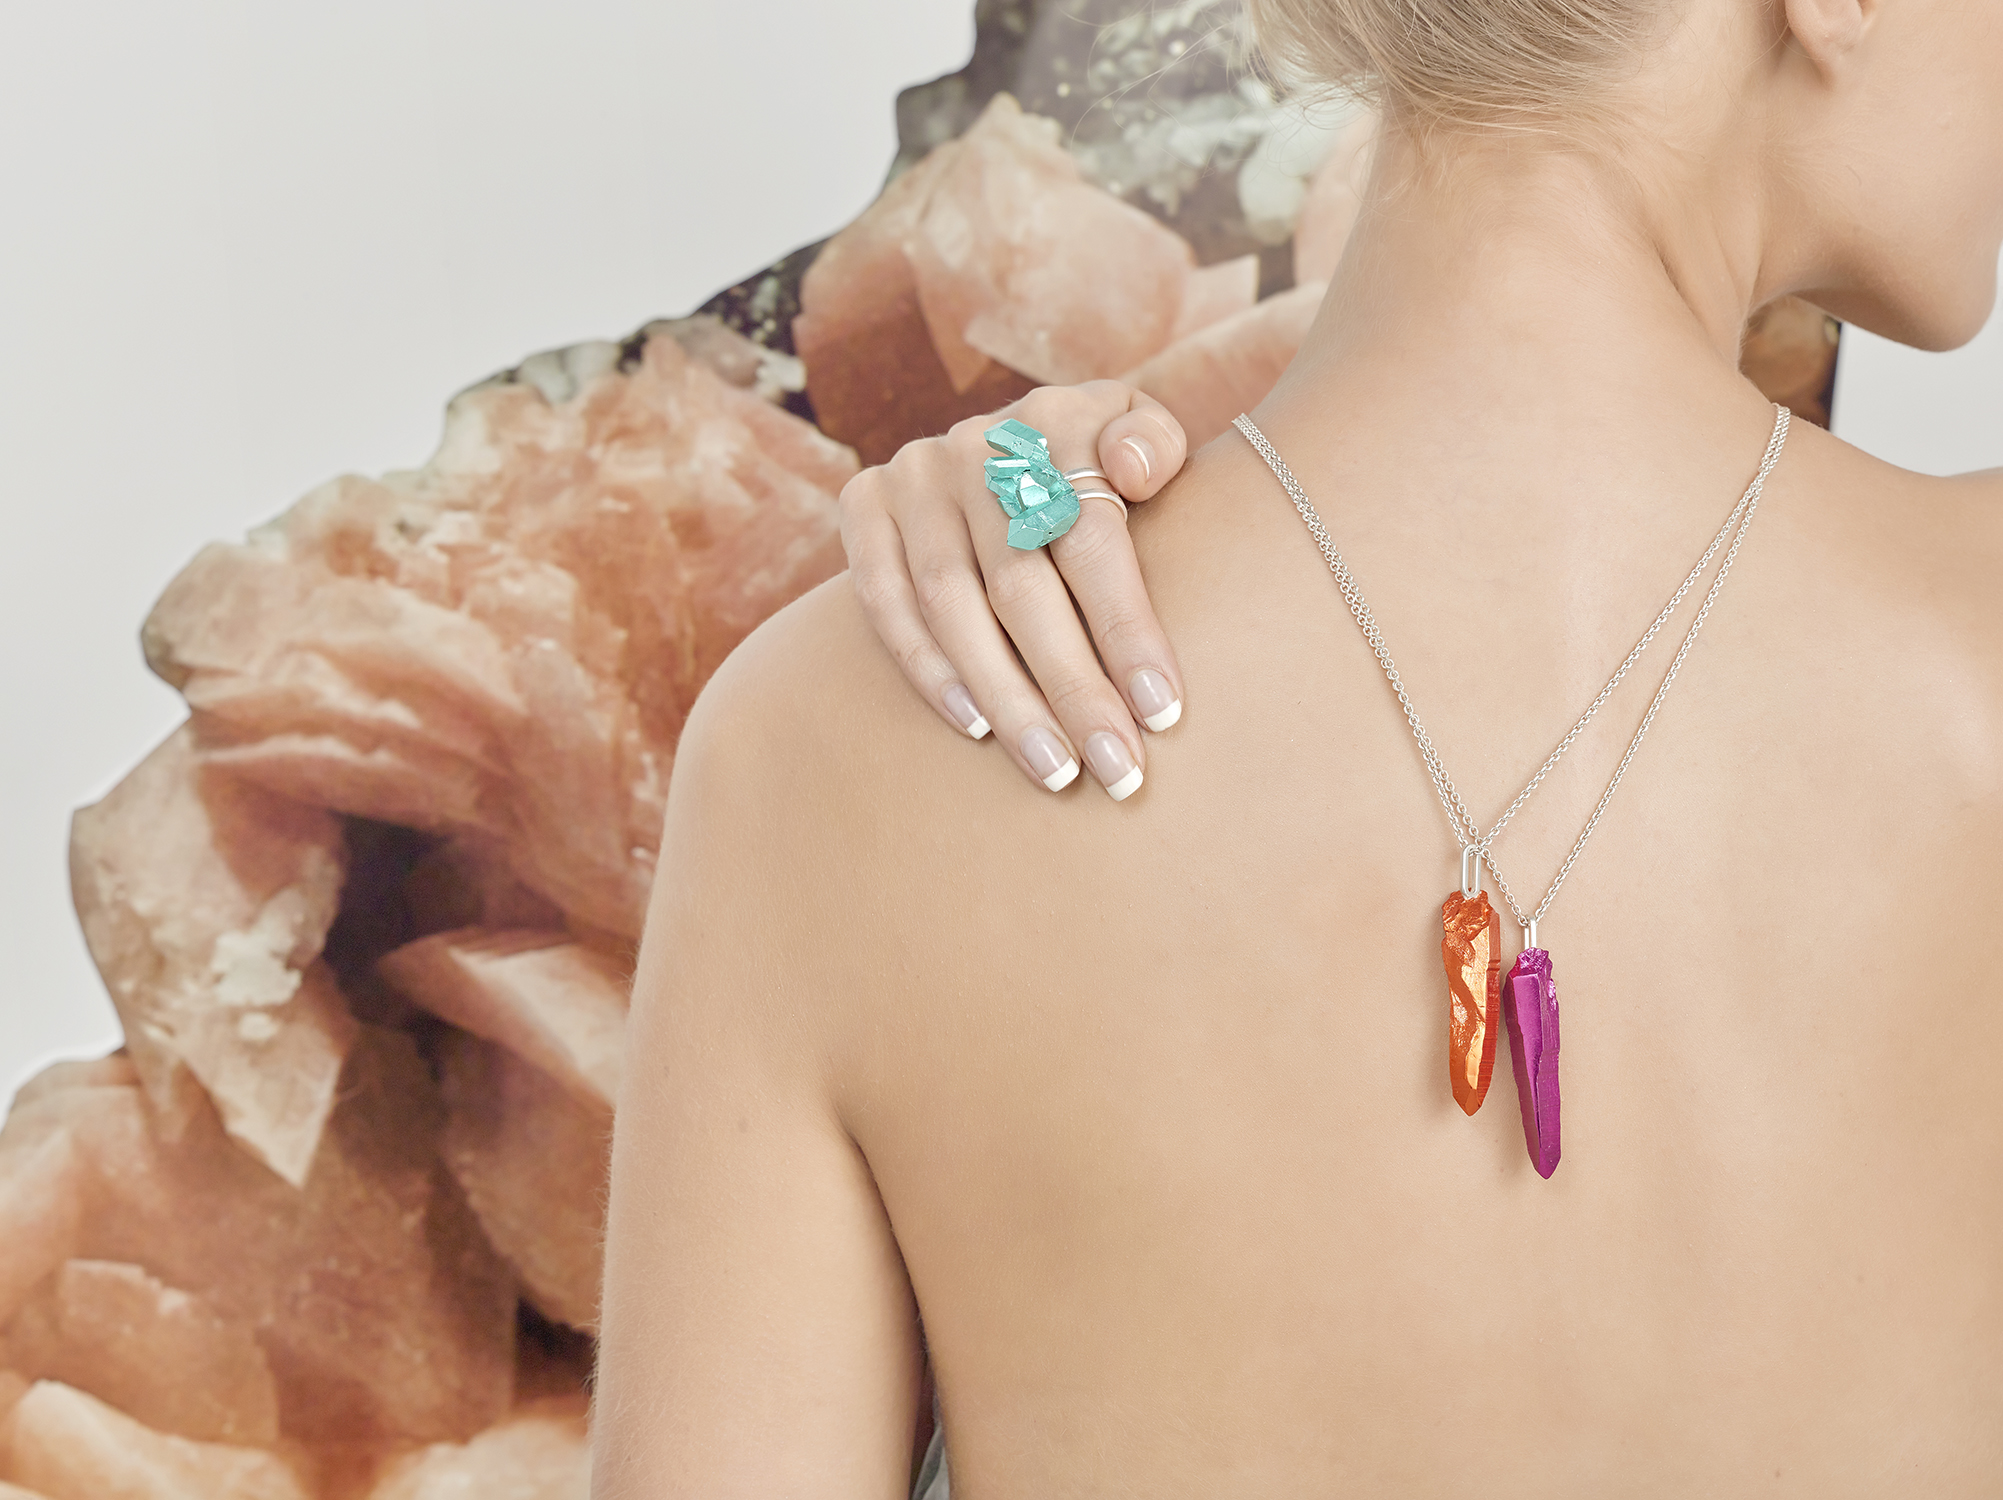 HotRocks Trigonal Large Cluster Ring in Turquoise and Pendants in Orange and Pink Low Res.jpg